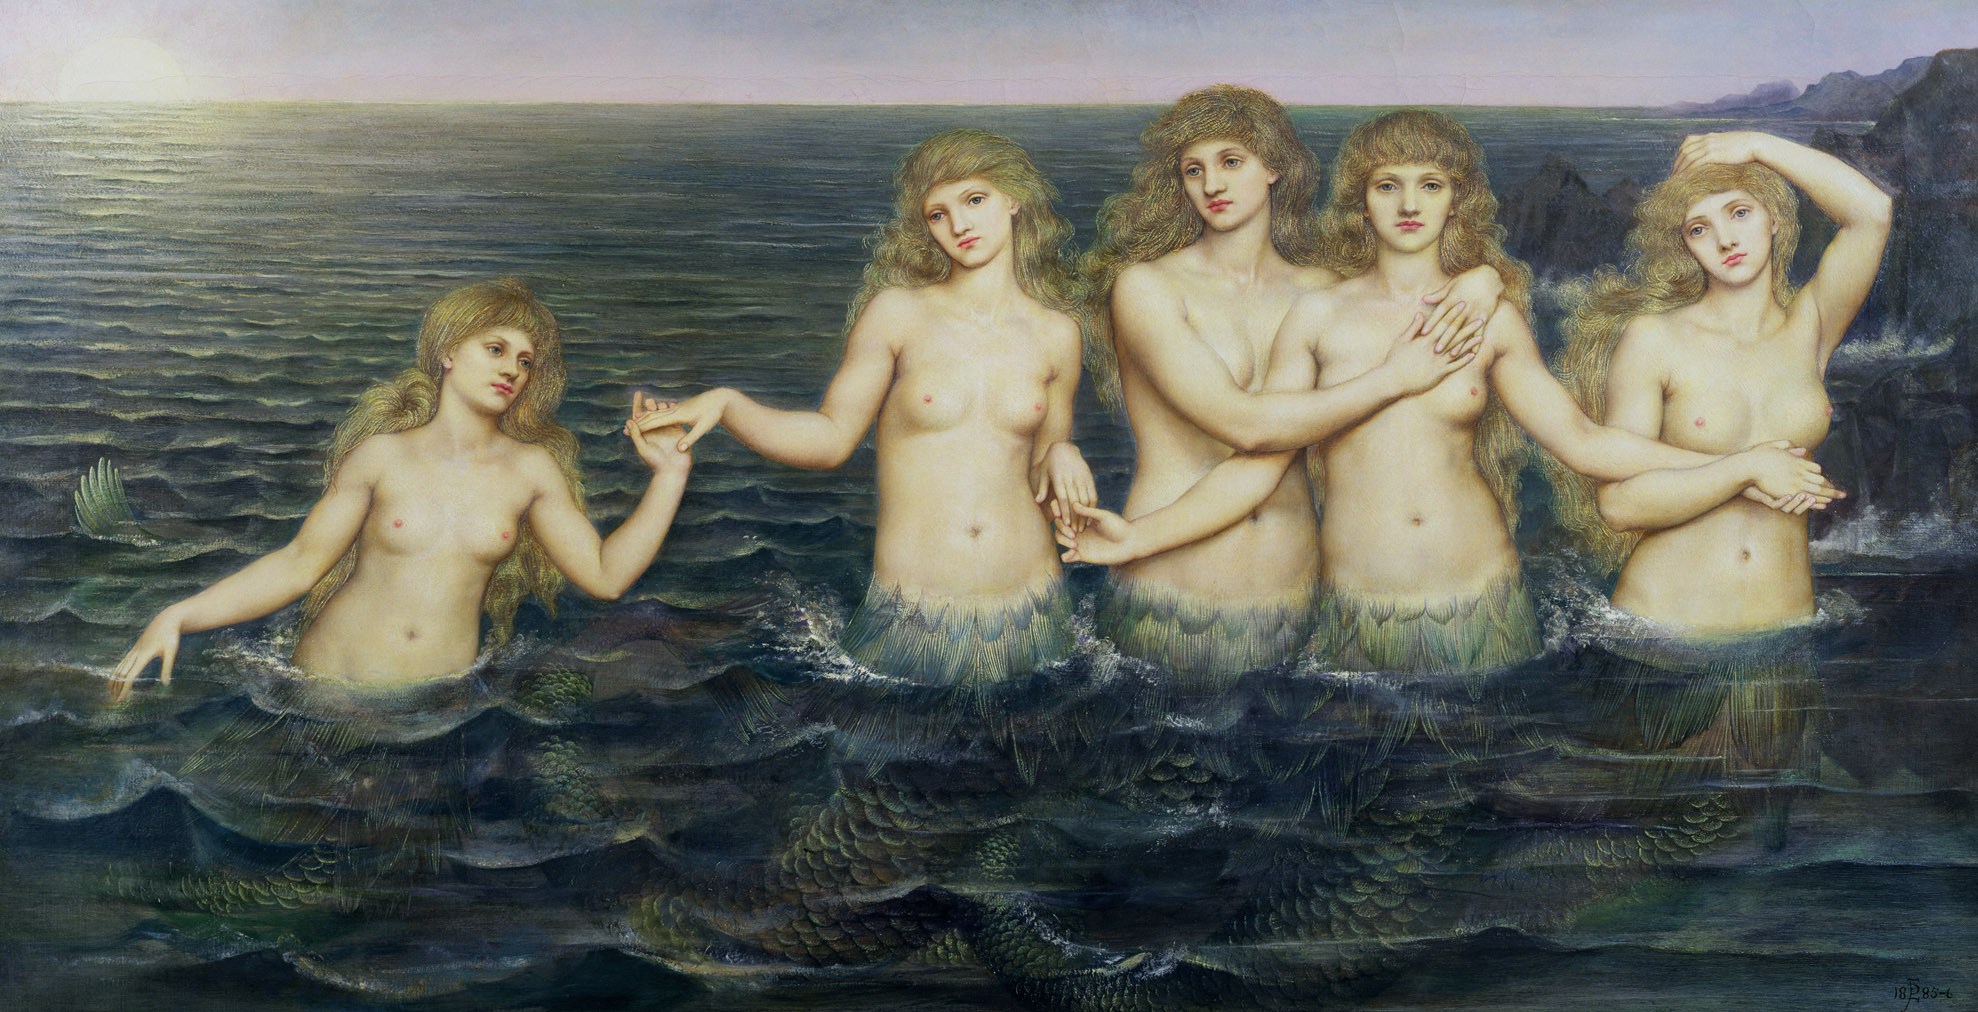 Evelyn de Morgan (English Painter), The Sea Maidents, 1886, oil on canvas